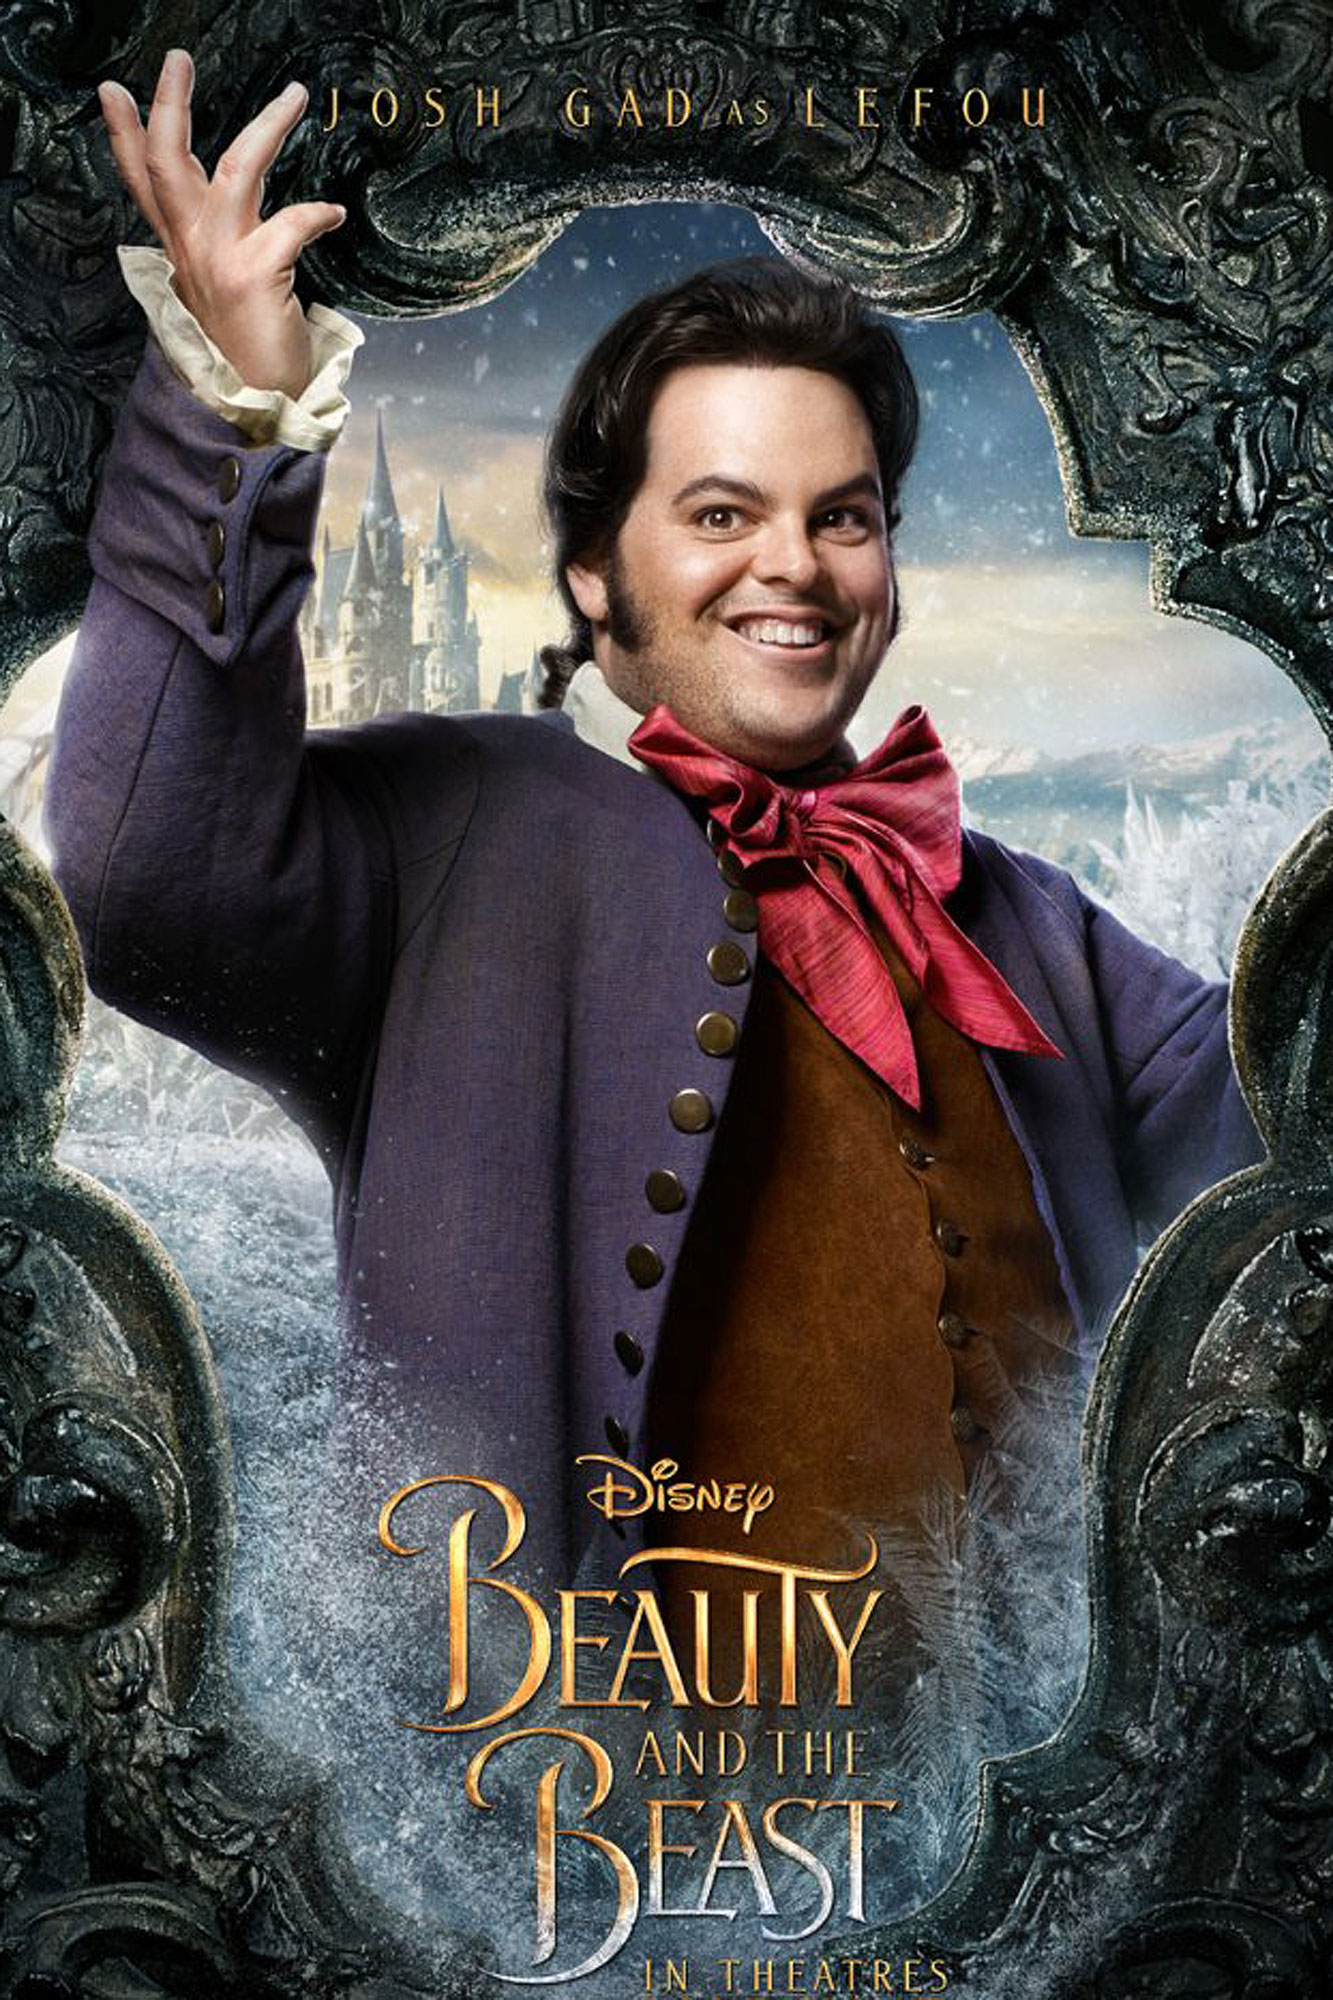 Josh Gad in Beauty and the Beast (2017)